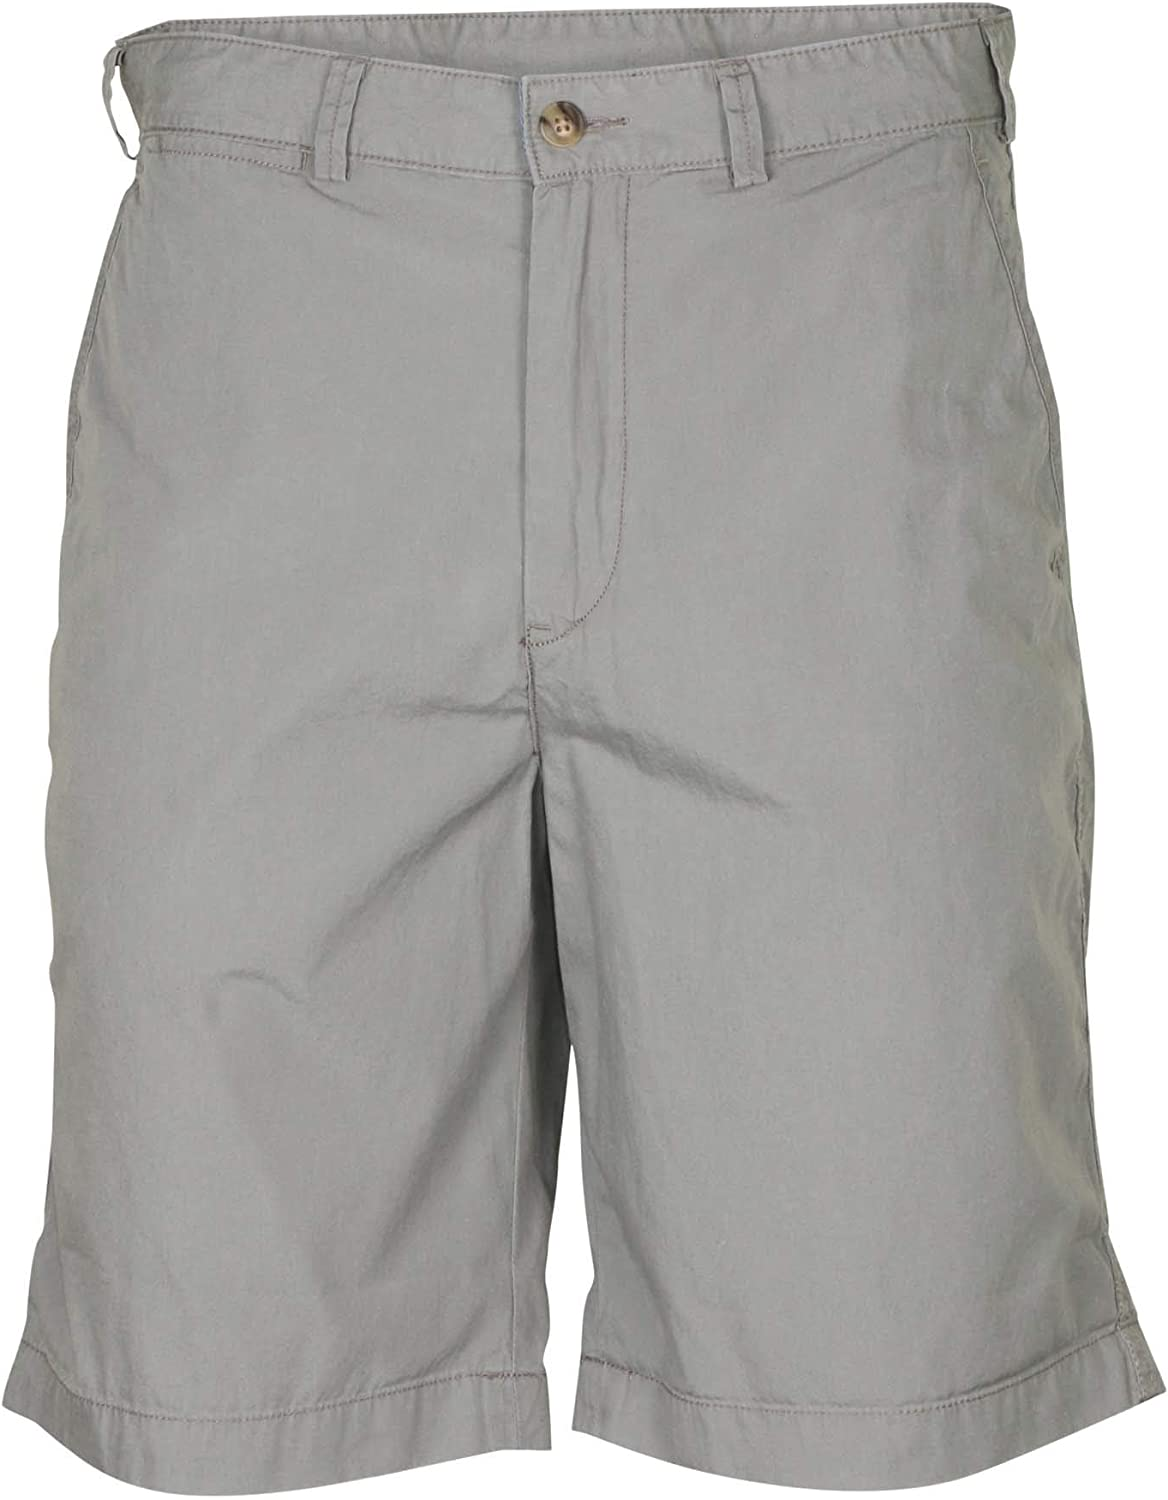 Polo Ralph Lauren Mens Big /& Tall Stretch Classic Fit Shorts